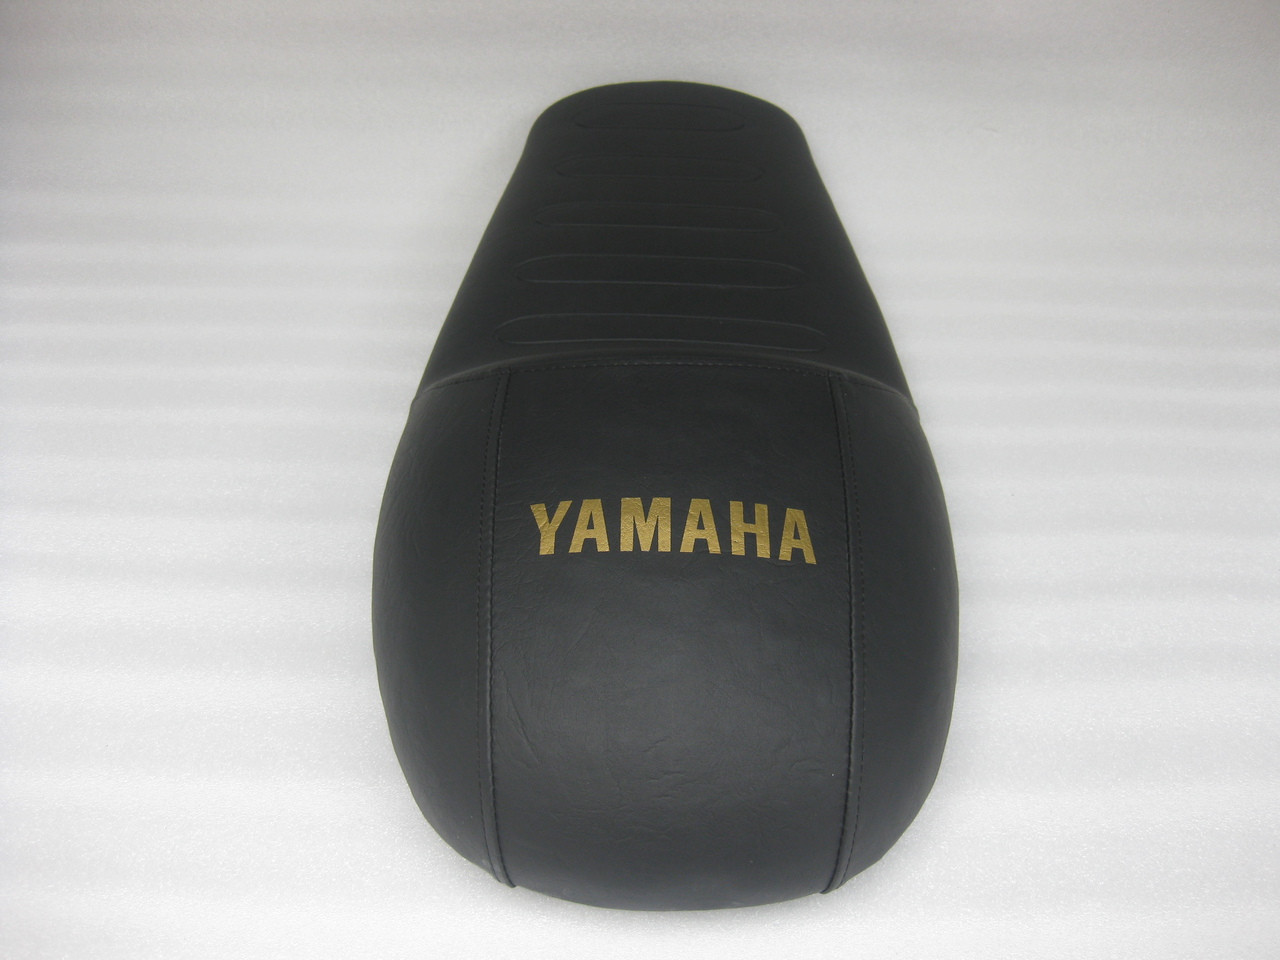 1976 - 1979 Yamaha XS750 Standard XS750F cafe racer race motorcycle seat with modified seat pan #4353